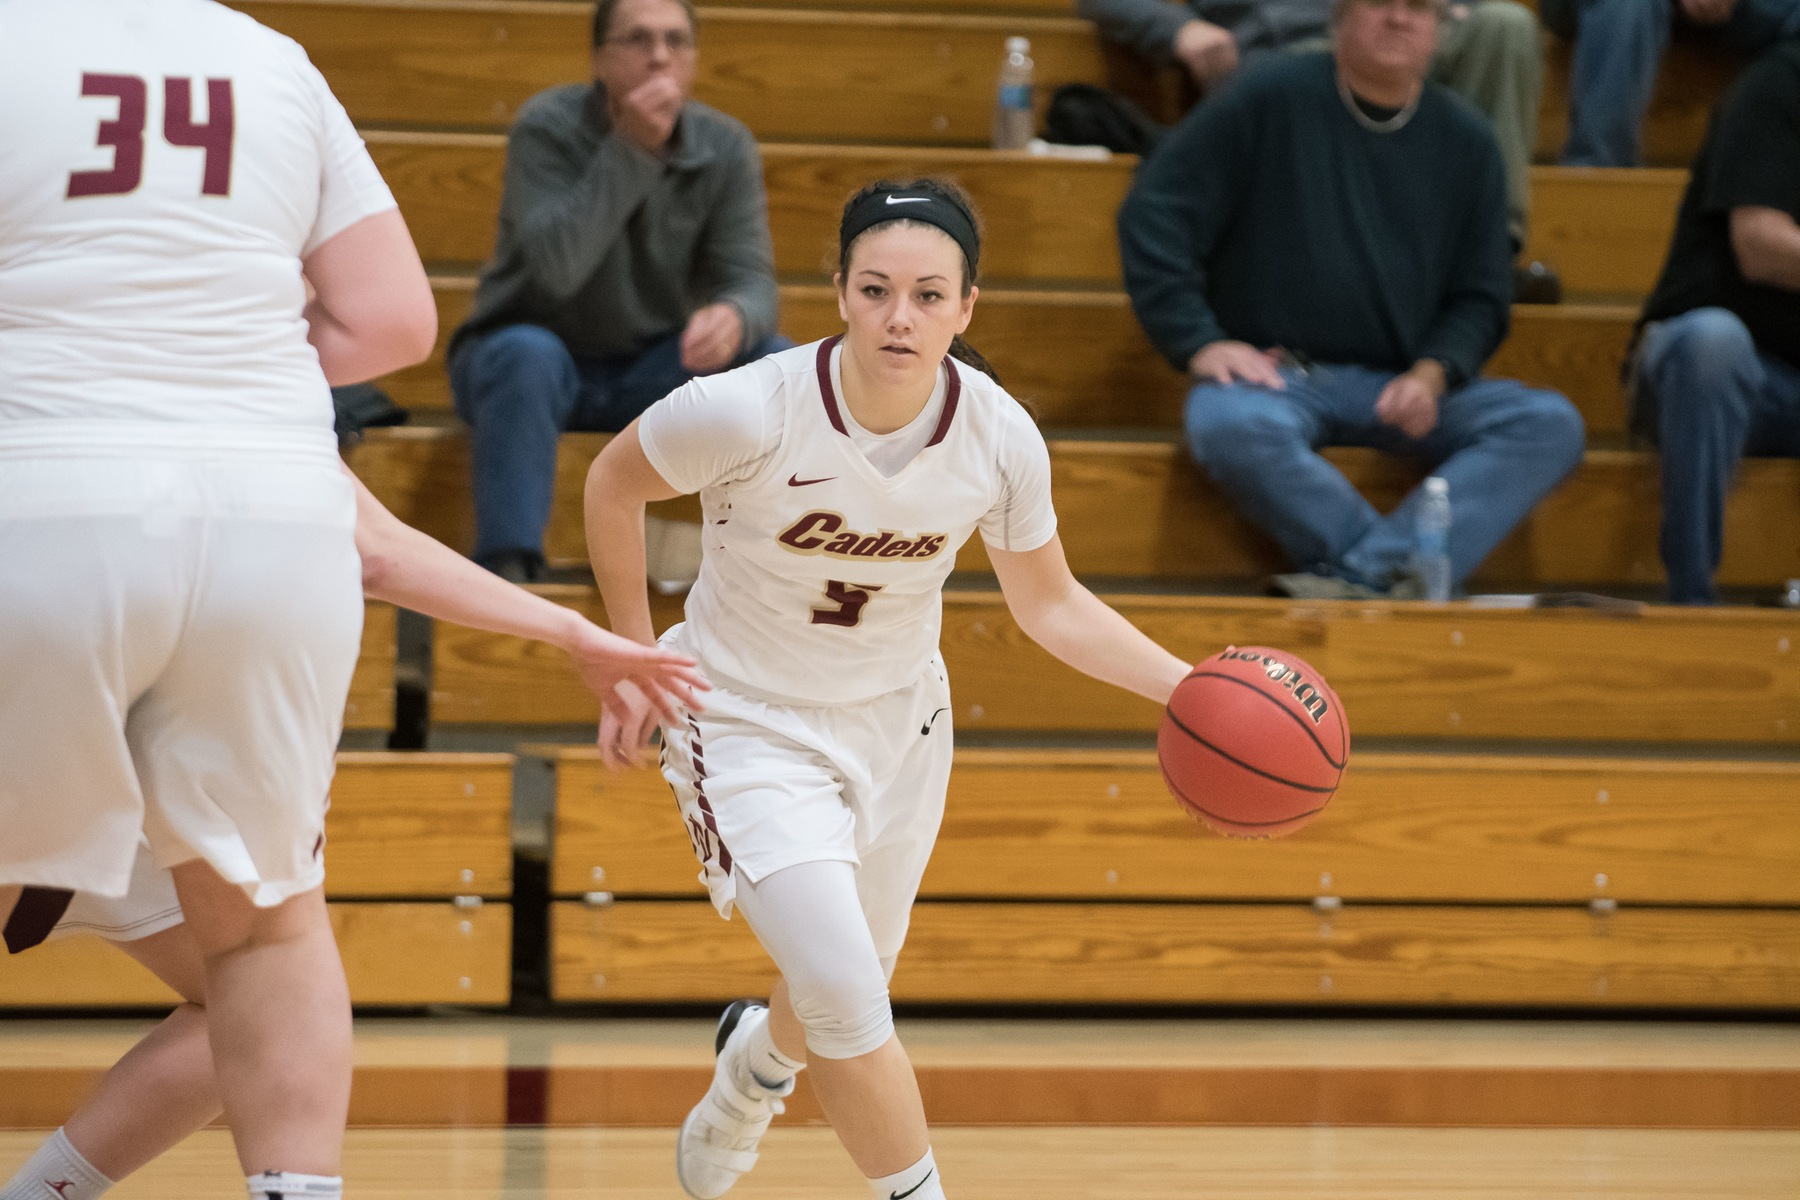 Women's Basketball: Cadets Fall to Regis, 58-54